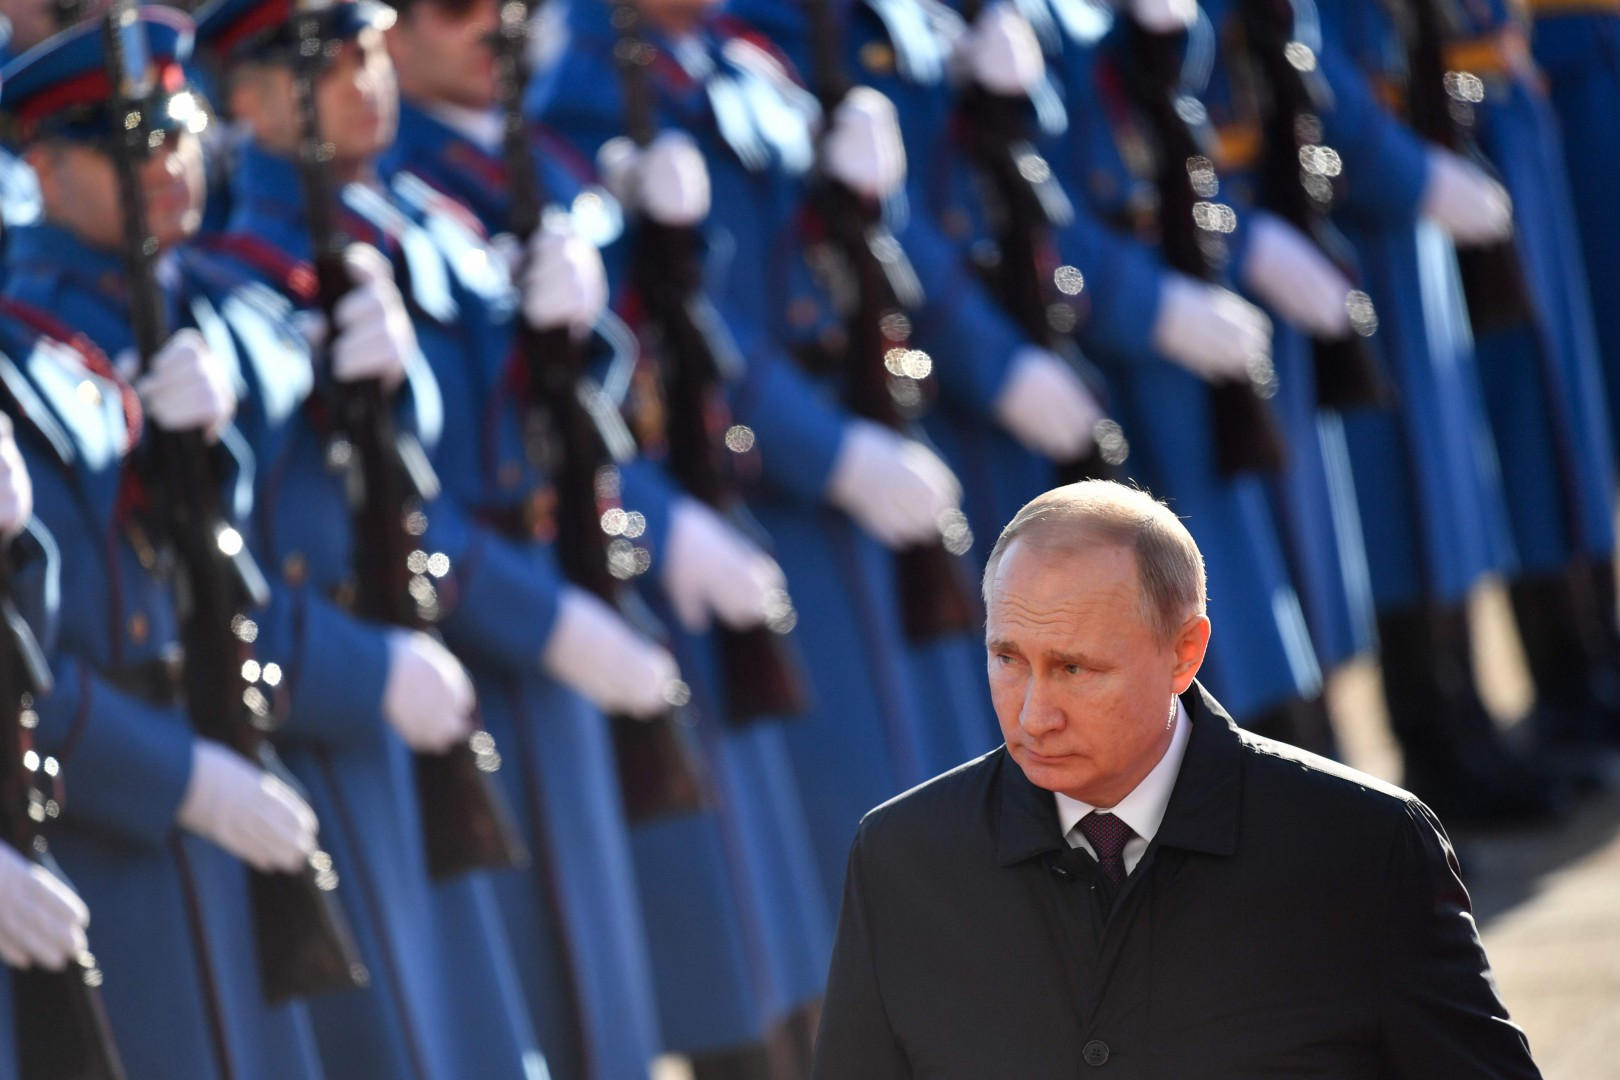 Russian President Vladimir Putin walks past Serbian honour guards during a welcoming ceremony at the Palace of Serbia on January 17, 2019, in Belgrade. (Photo by Andrej ISAKOVIC / AFP)